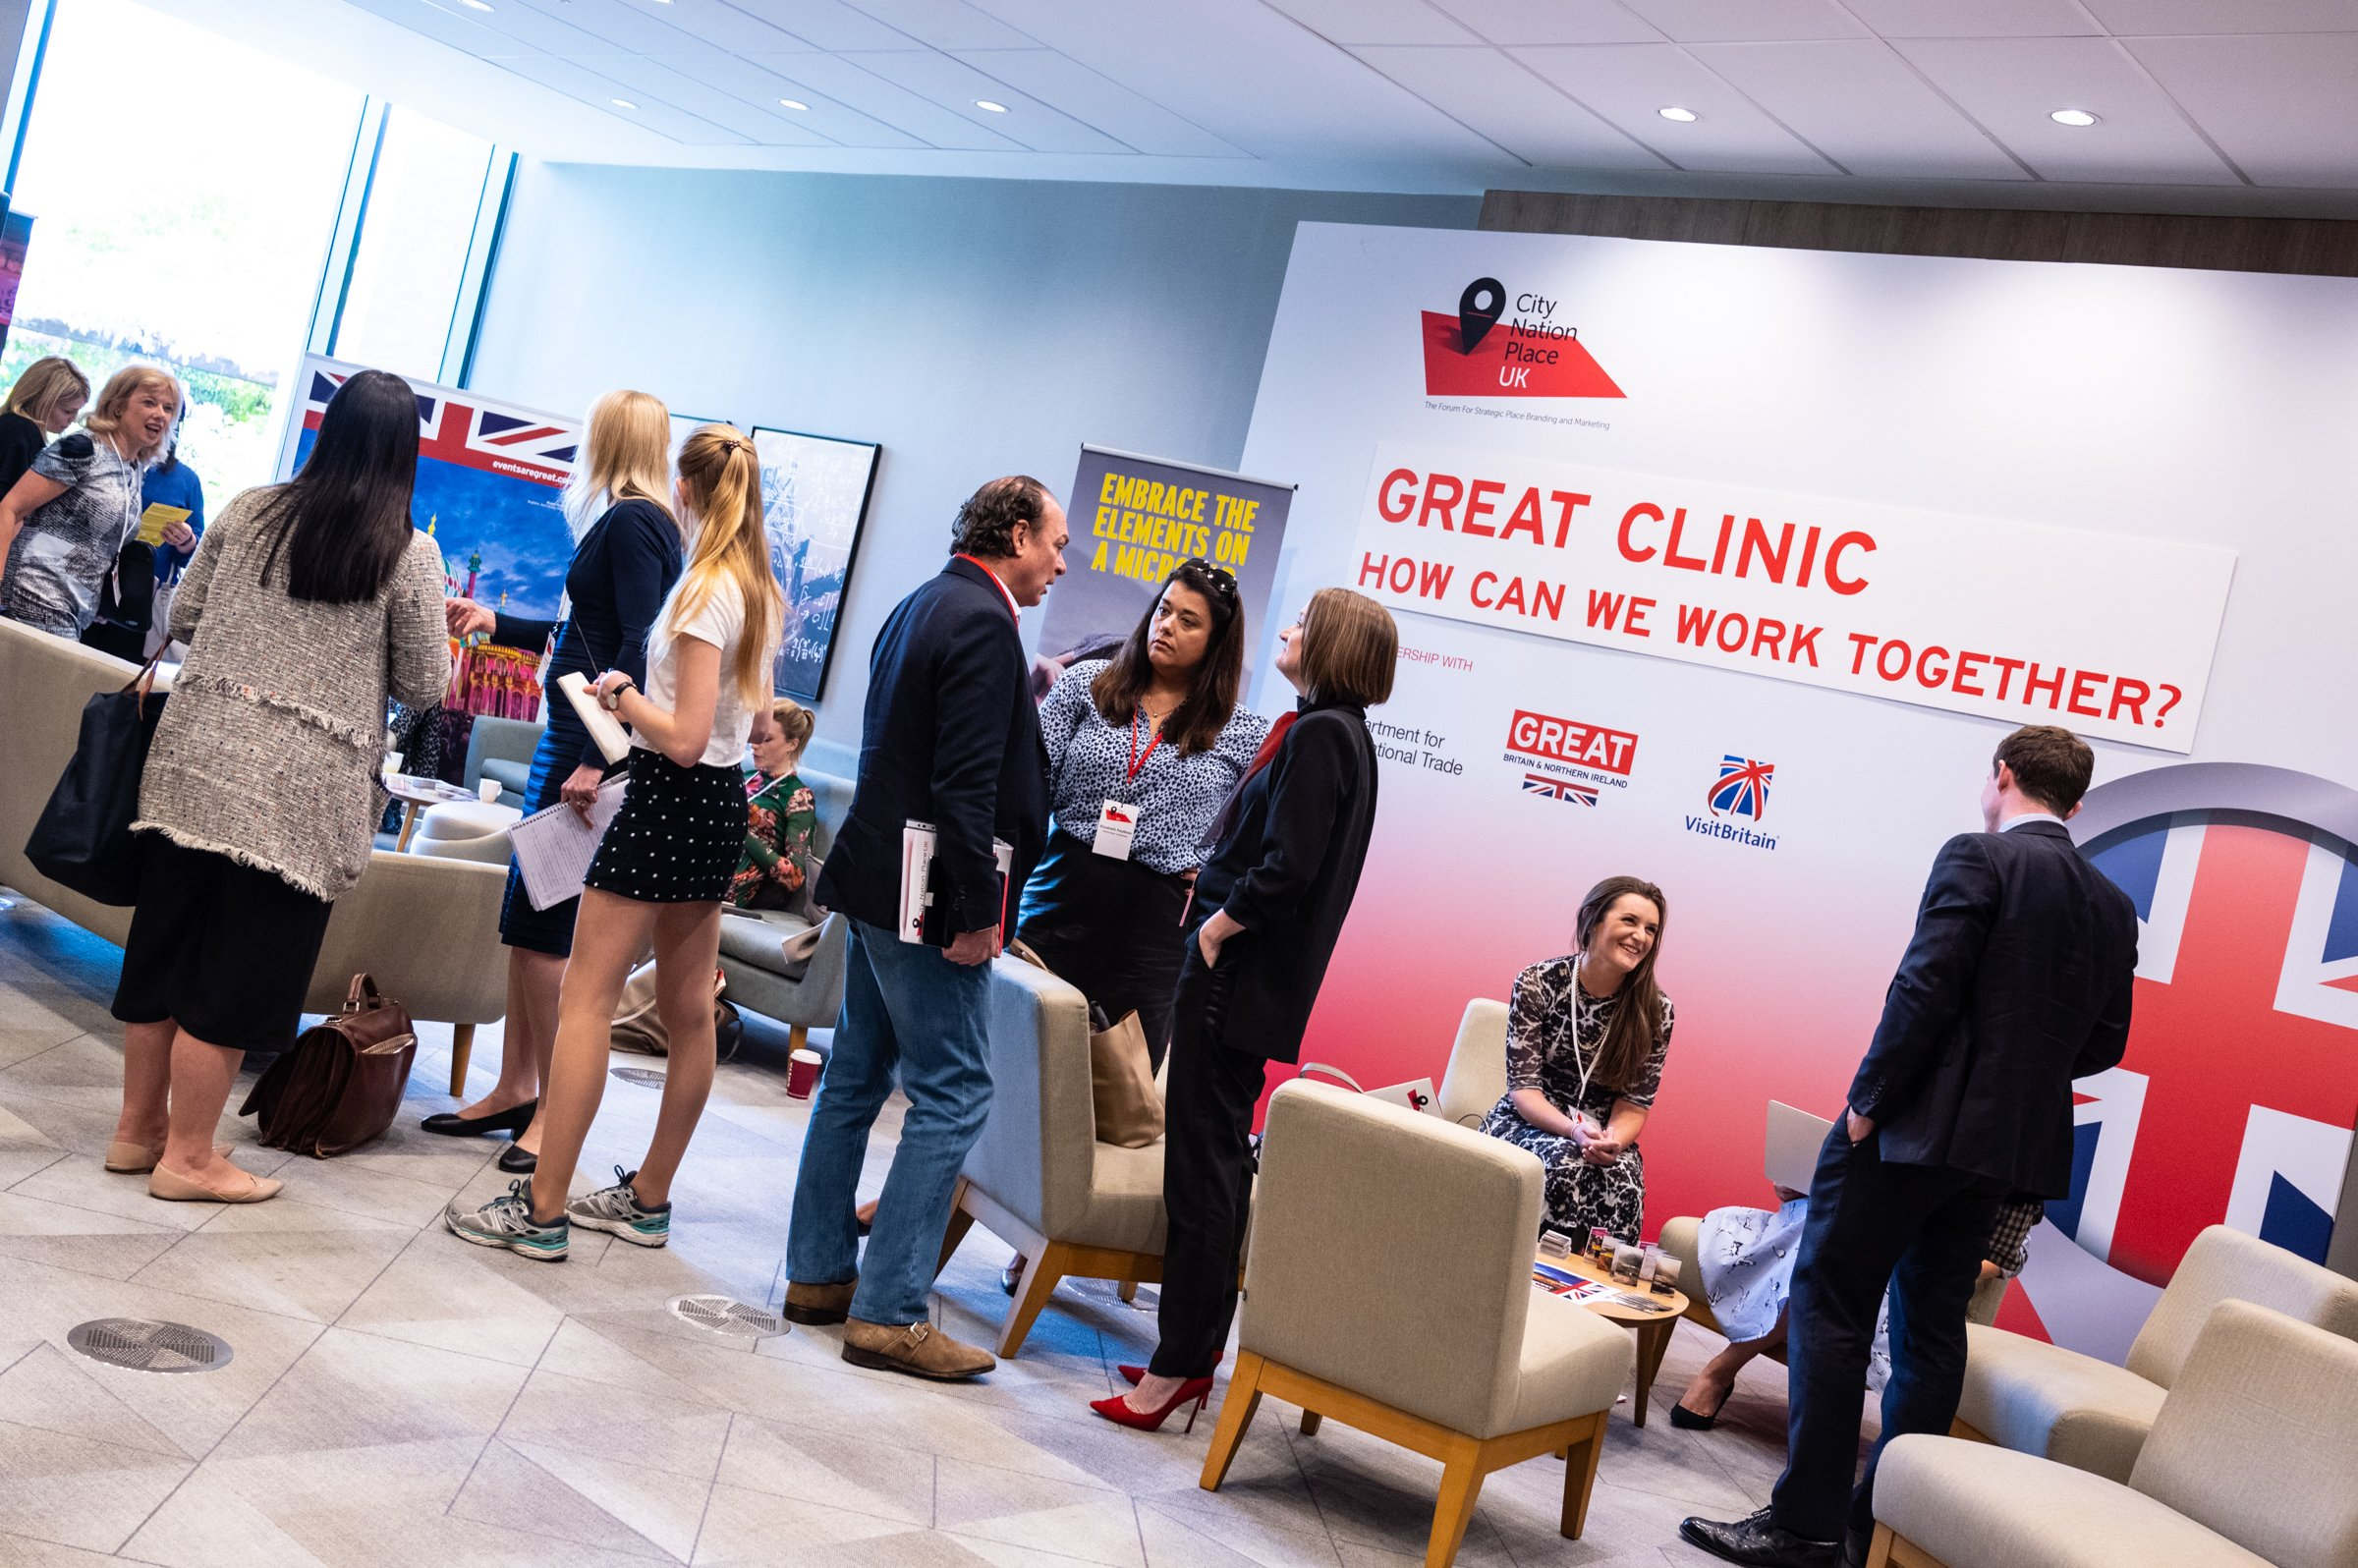 GREAT Britain Clinic networking area at City Nation Place UK 2019